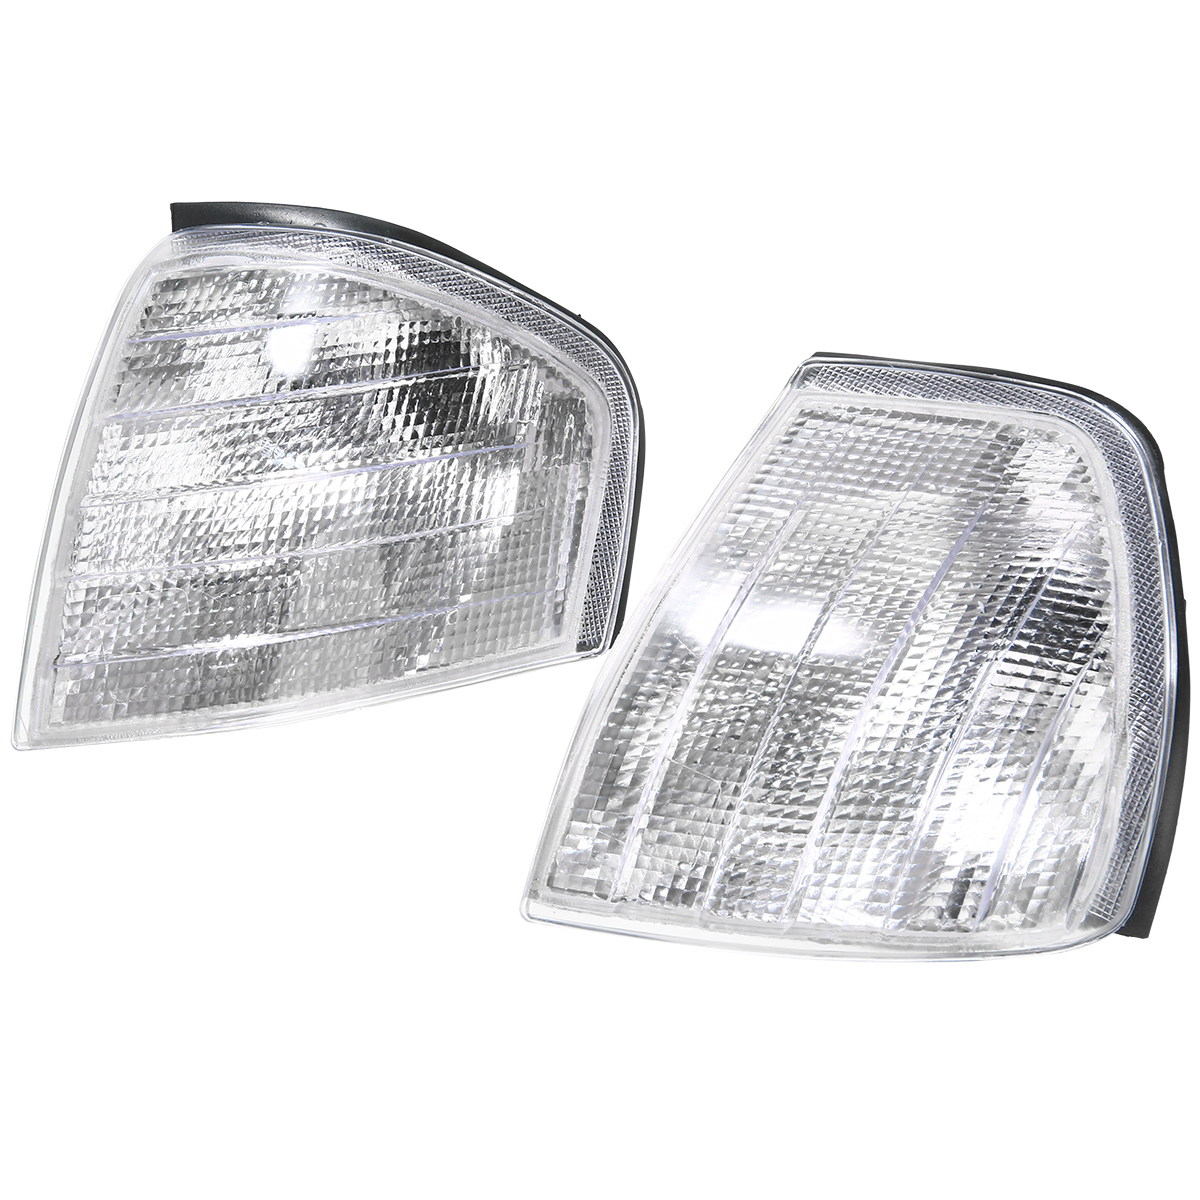 Image 3 - For Mercedes Benz C Class W202 1994 2000 1 Pair Clear Lens Turn Signal Corner Light Lamp Car Styling-in Signal Lamp from Automobiles & Motorcycles